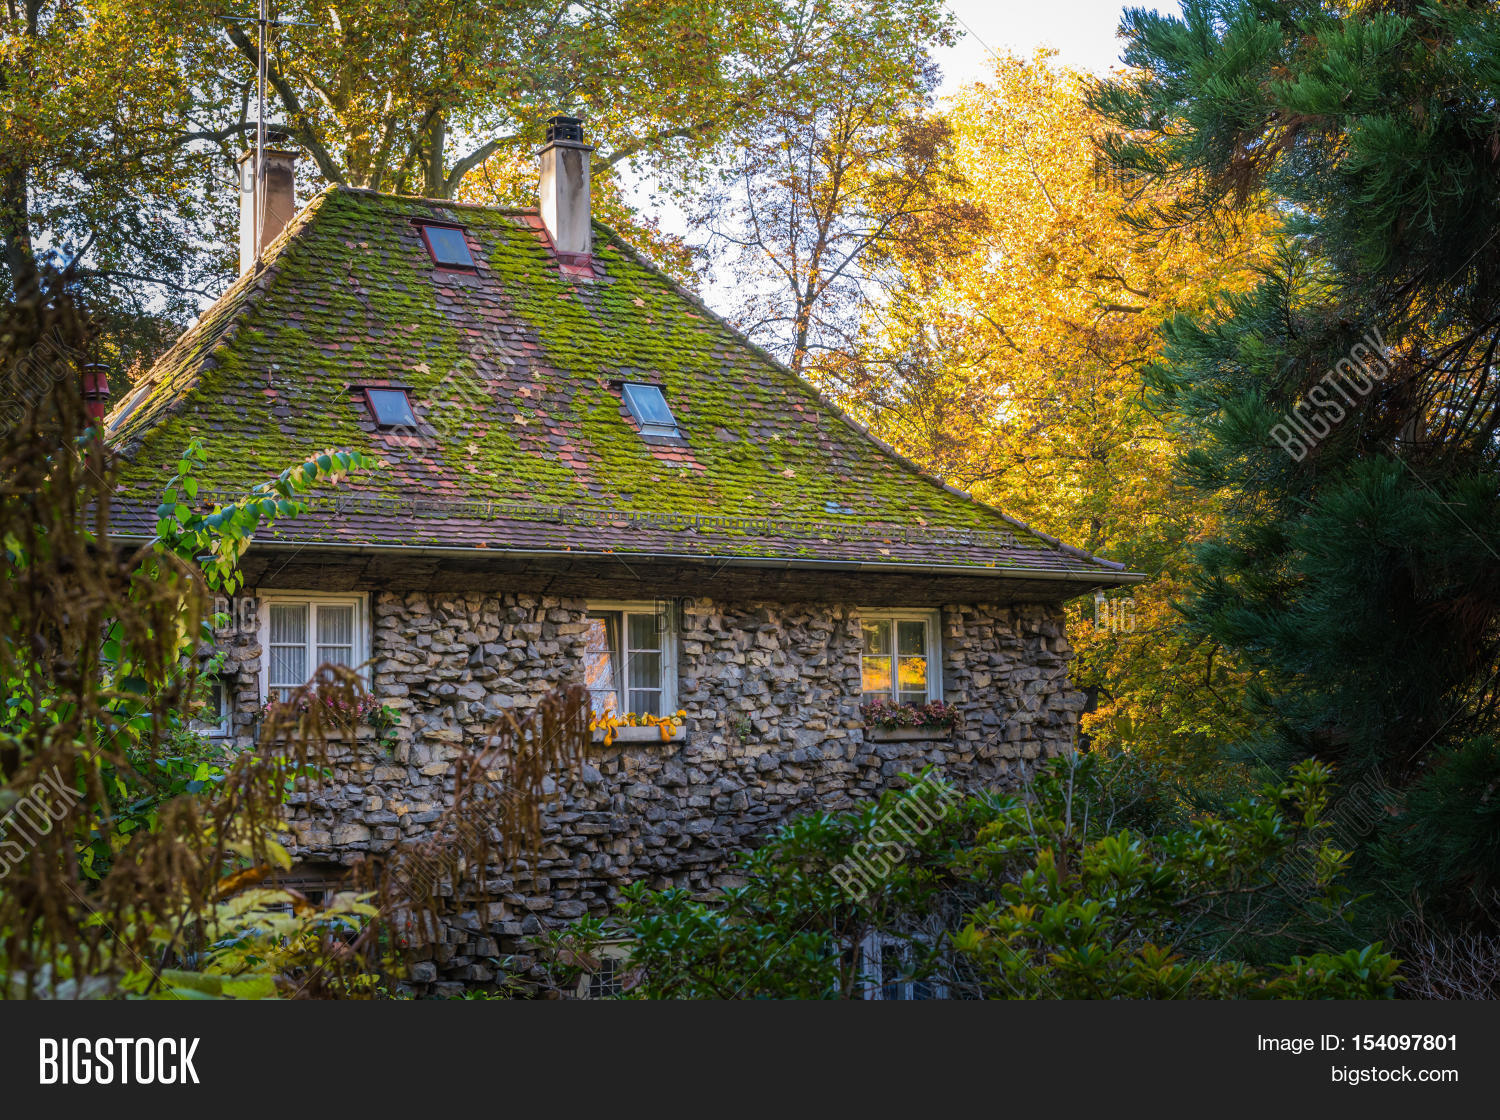 Large Old Stone House Forest Fantasy Fairy Tale German Woods Cottage Structure Green Au